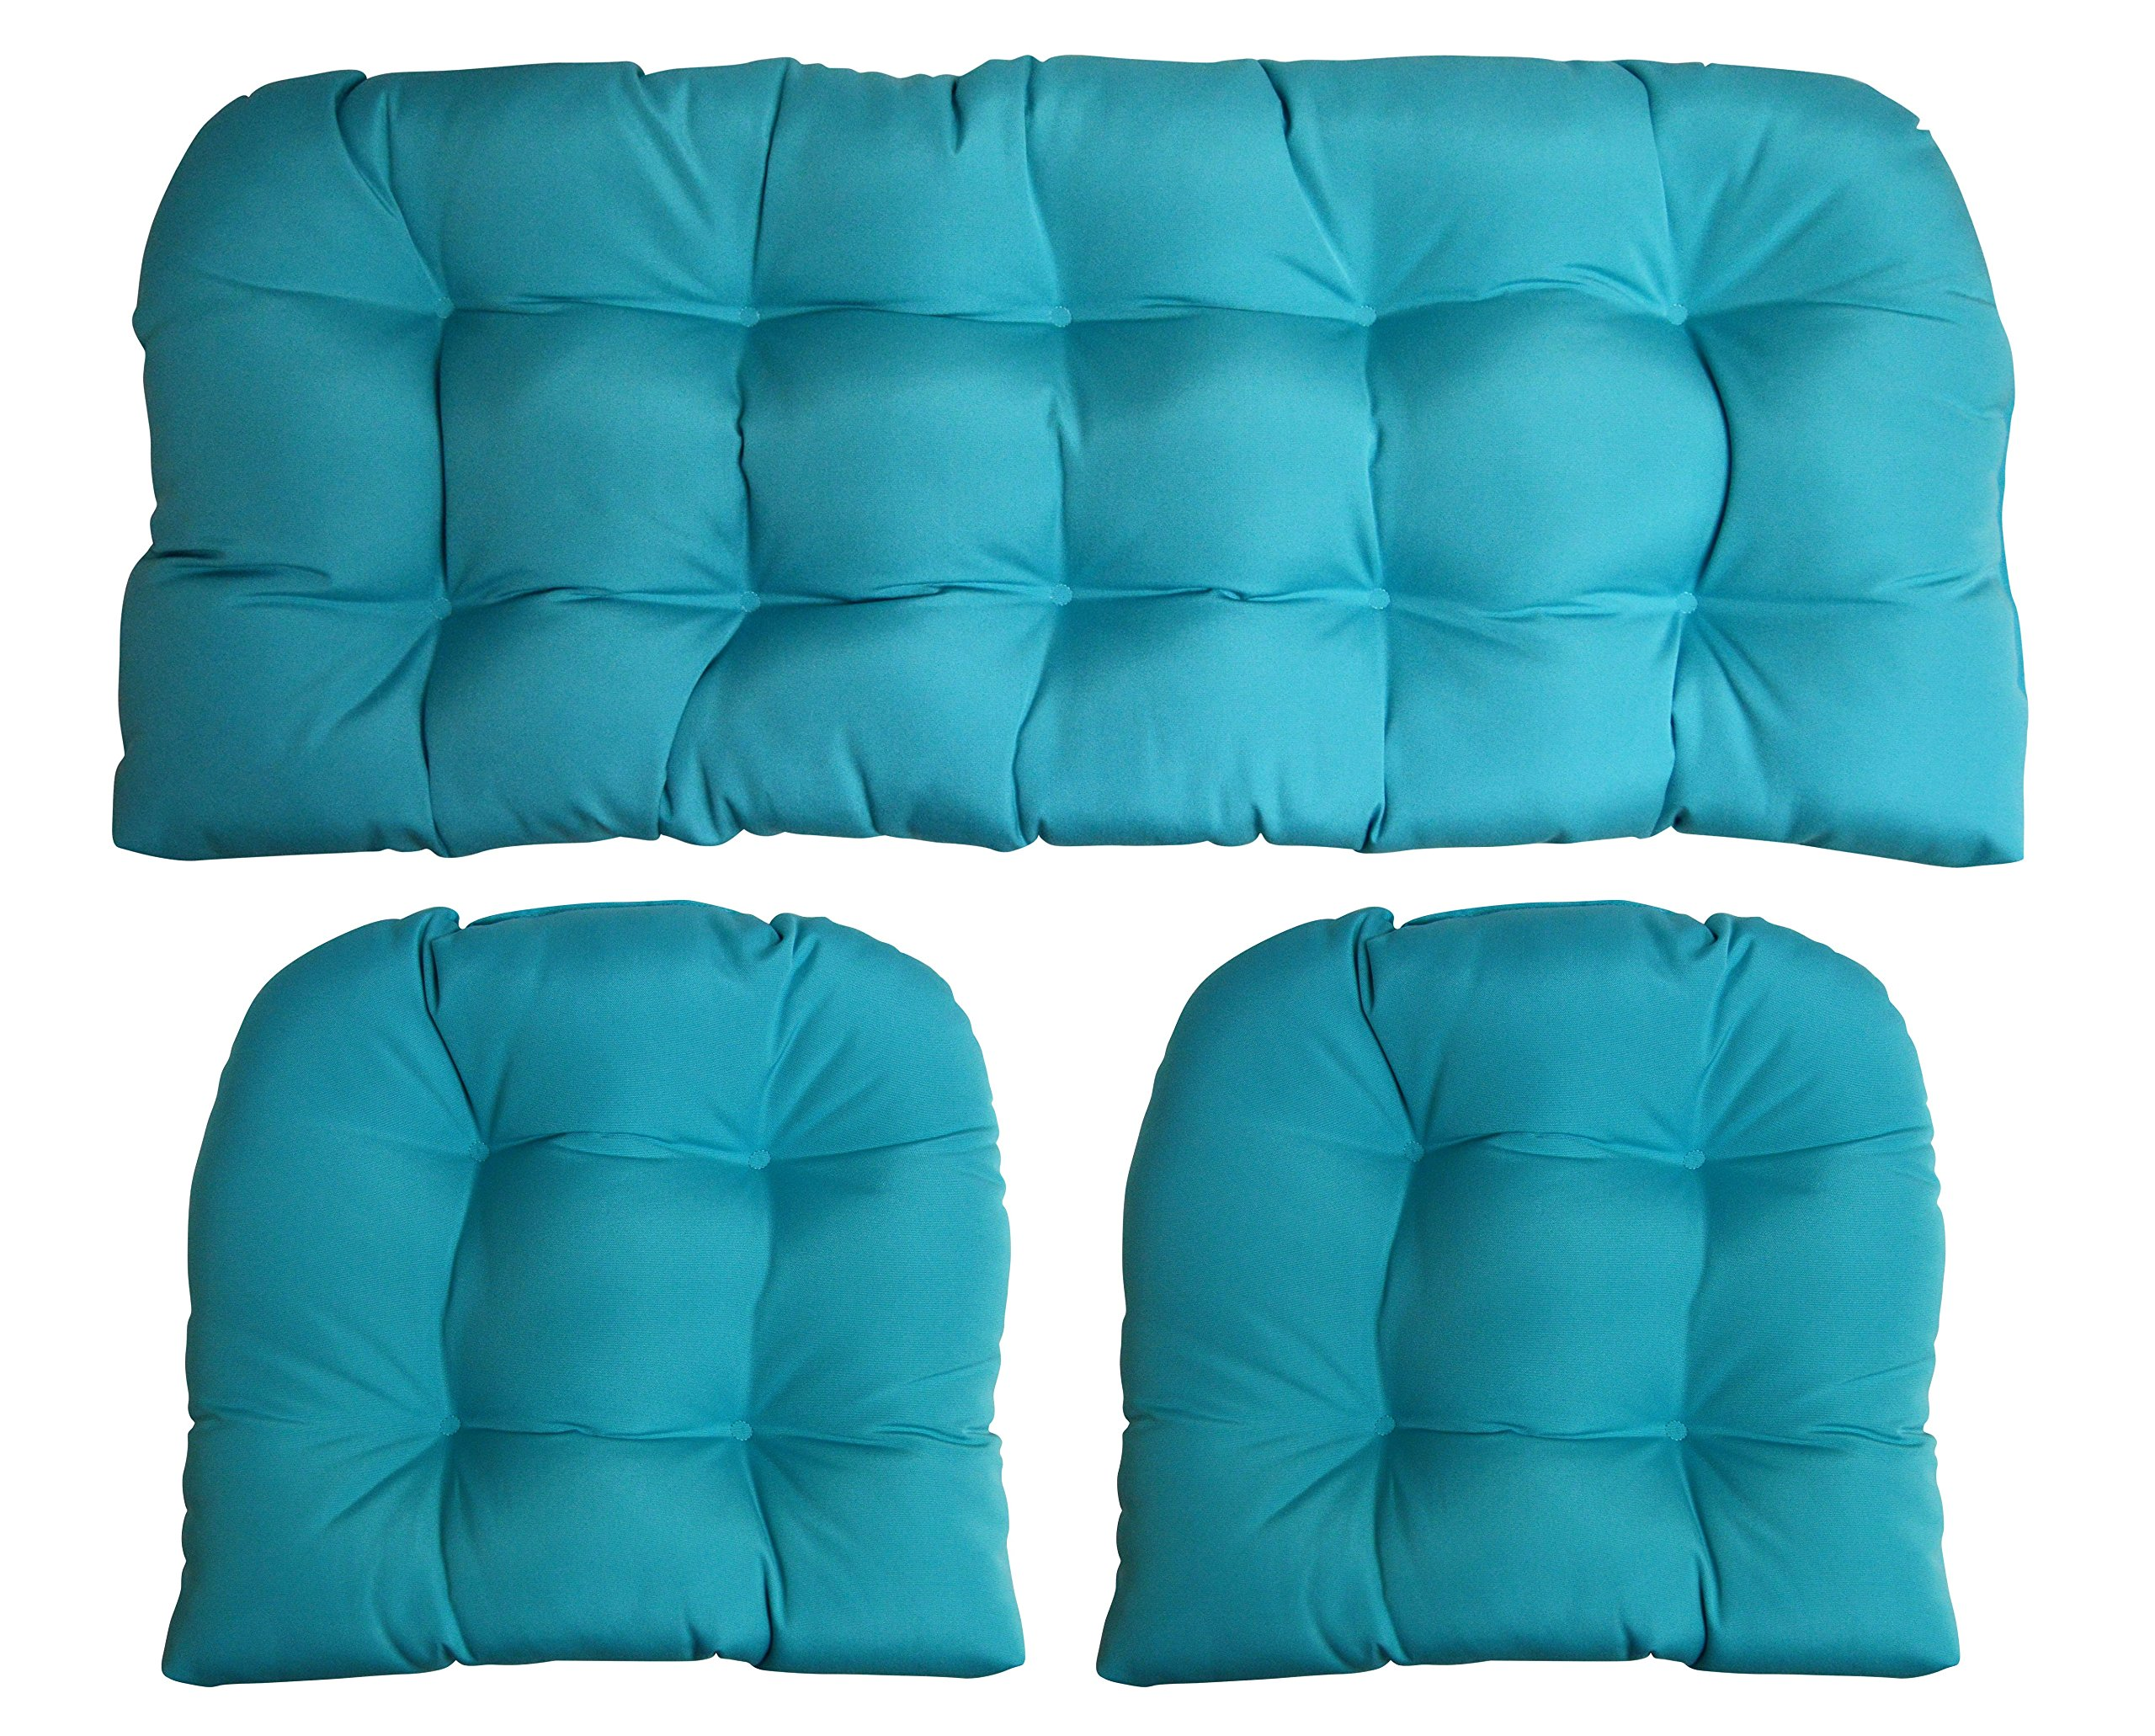 3 Piece Wicker Cushion Set - Indoor / Outdoor Wicker Loveseat Settee & 2 Matching Chair Cushions - Sunbrella Canvas Aruba Turquoise Aqua Blue (1125)